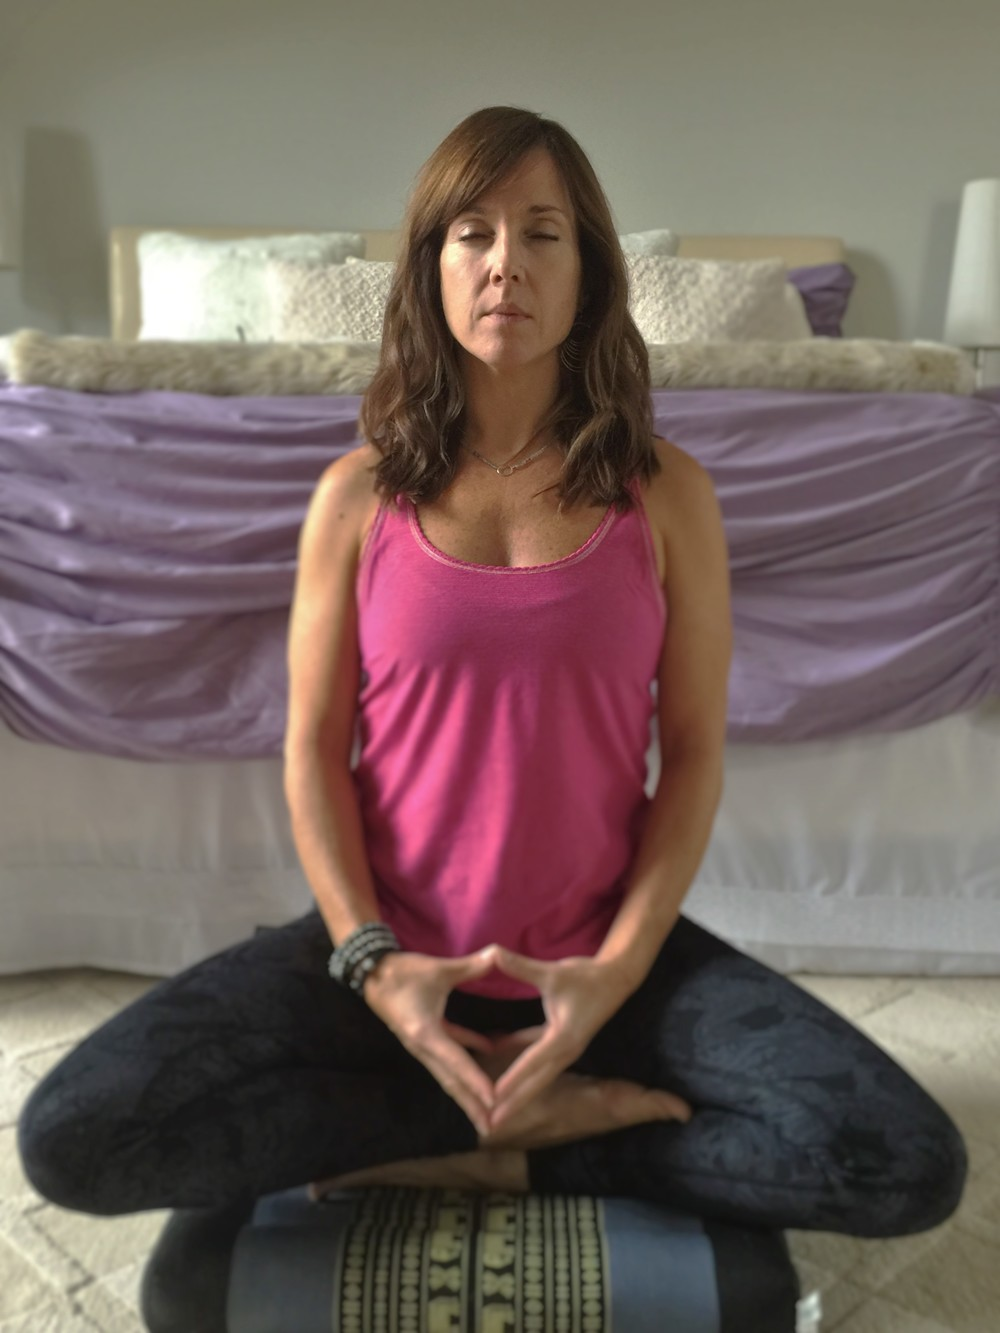 This is a piece I wrote for lululemon athletica Danbury #fuelhappiness #exploremeditation